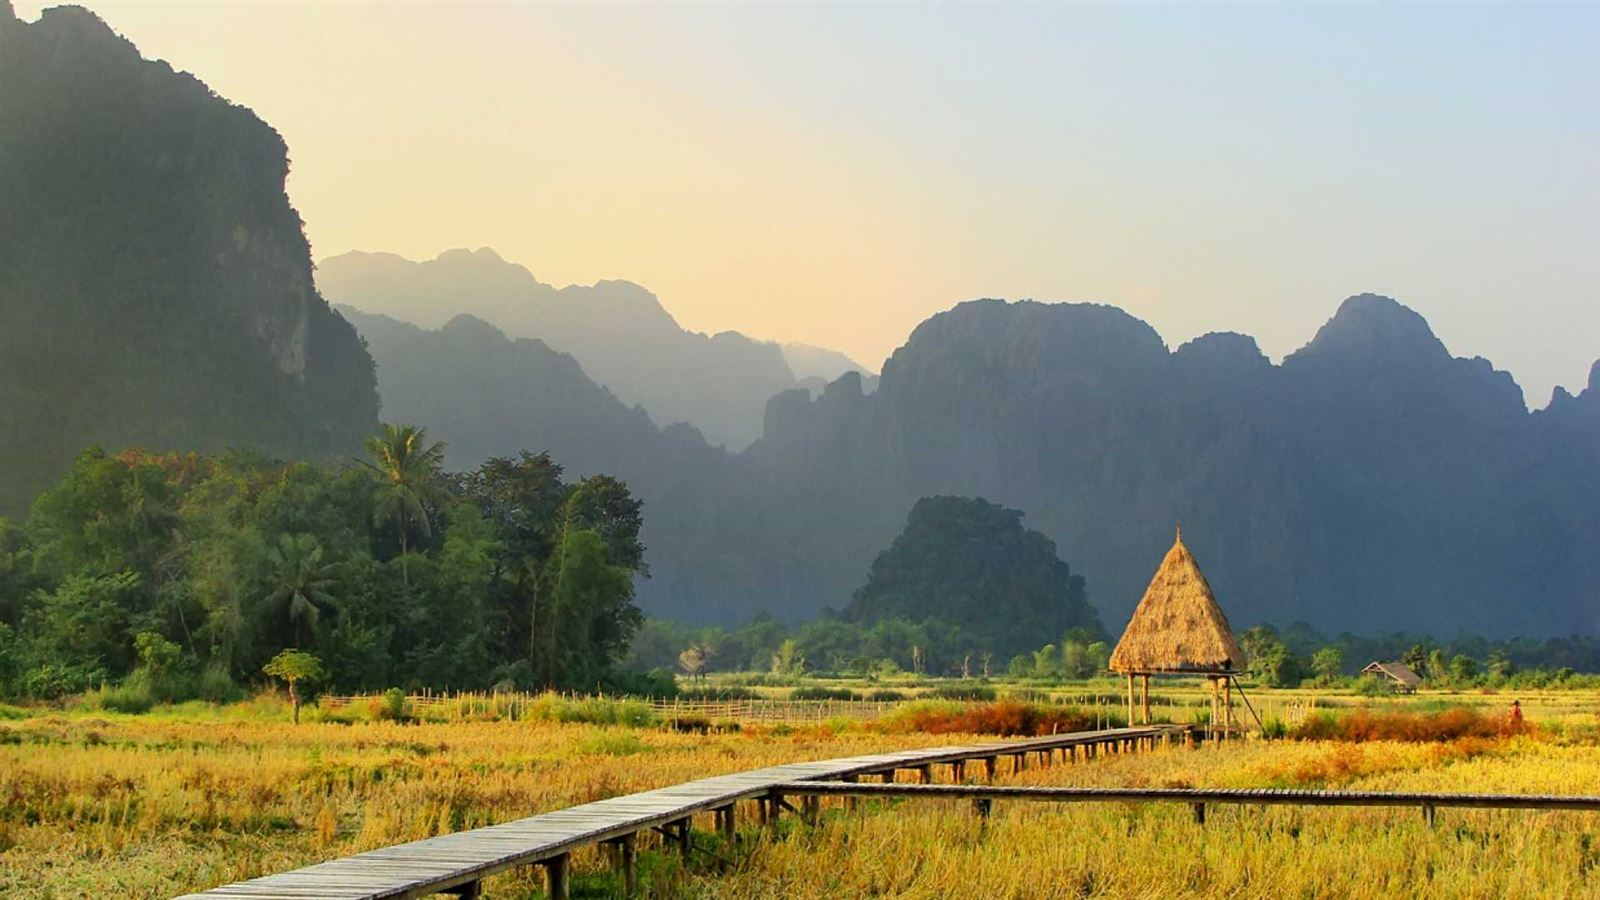 countryside of laos